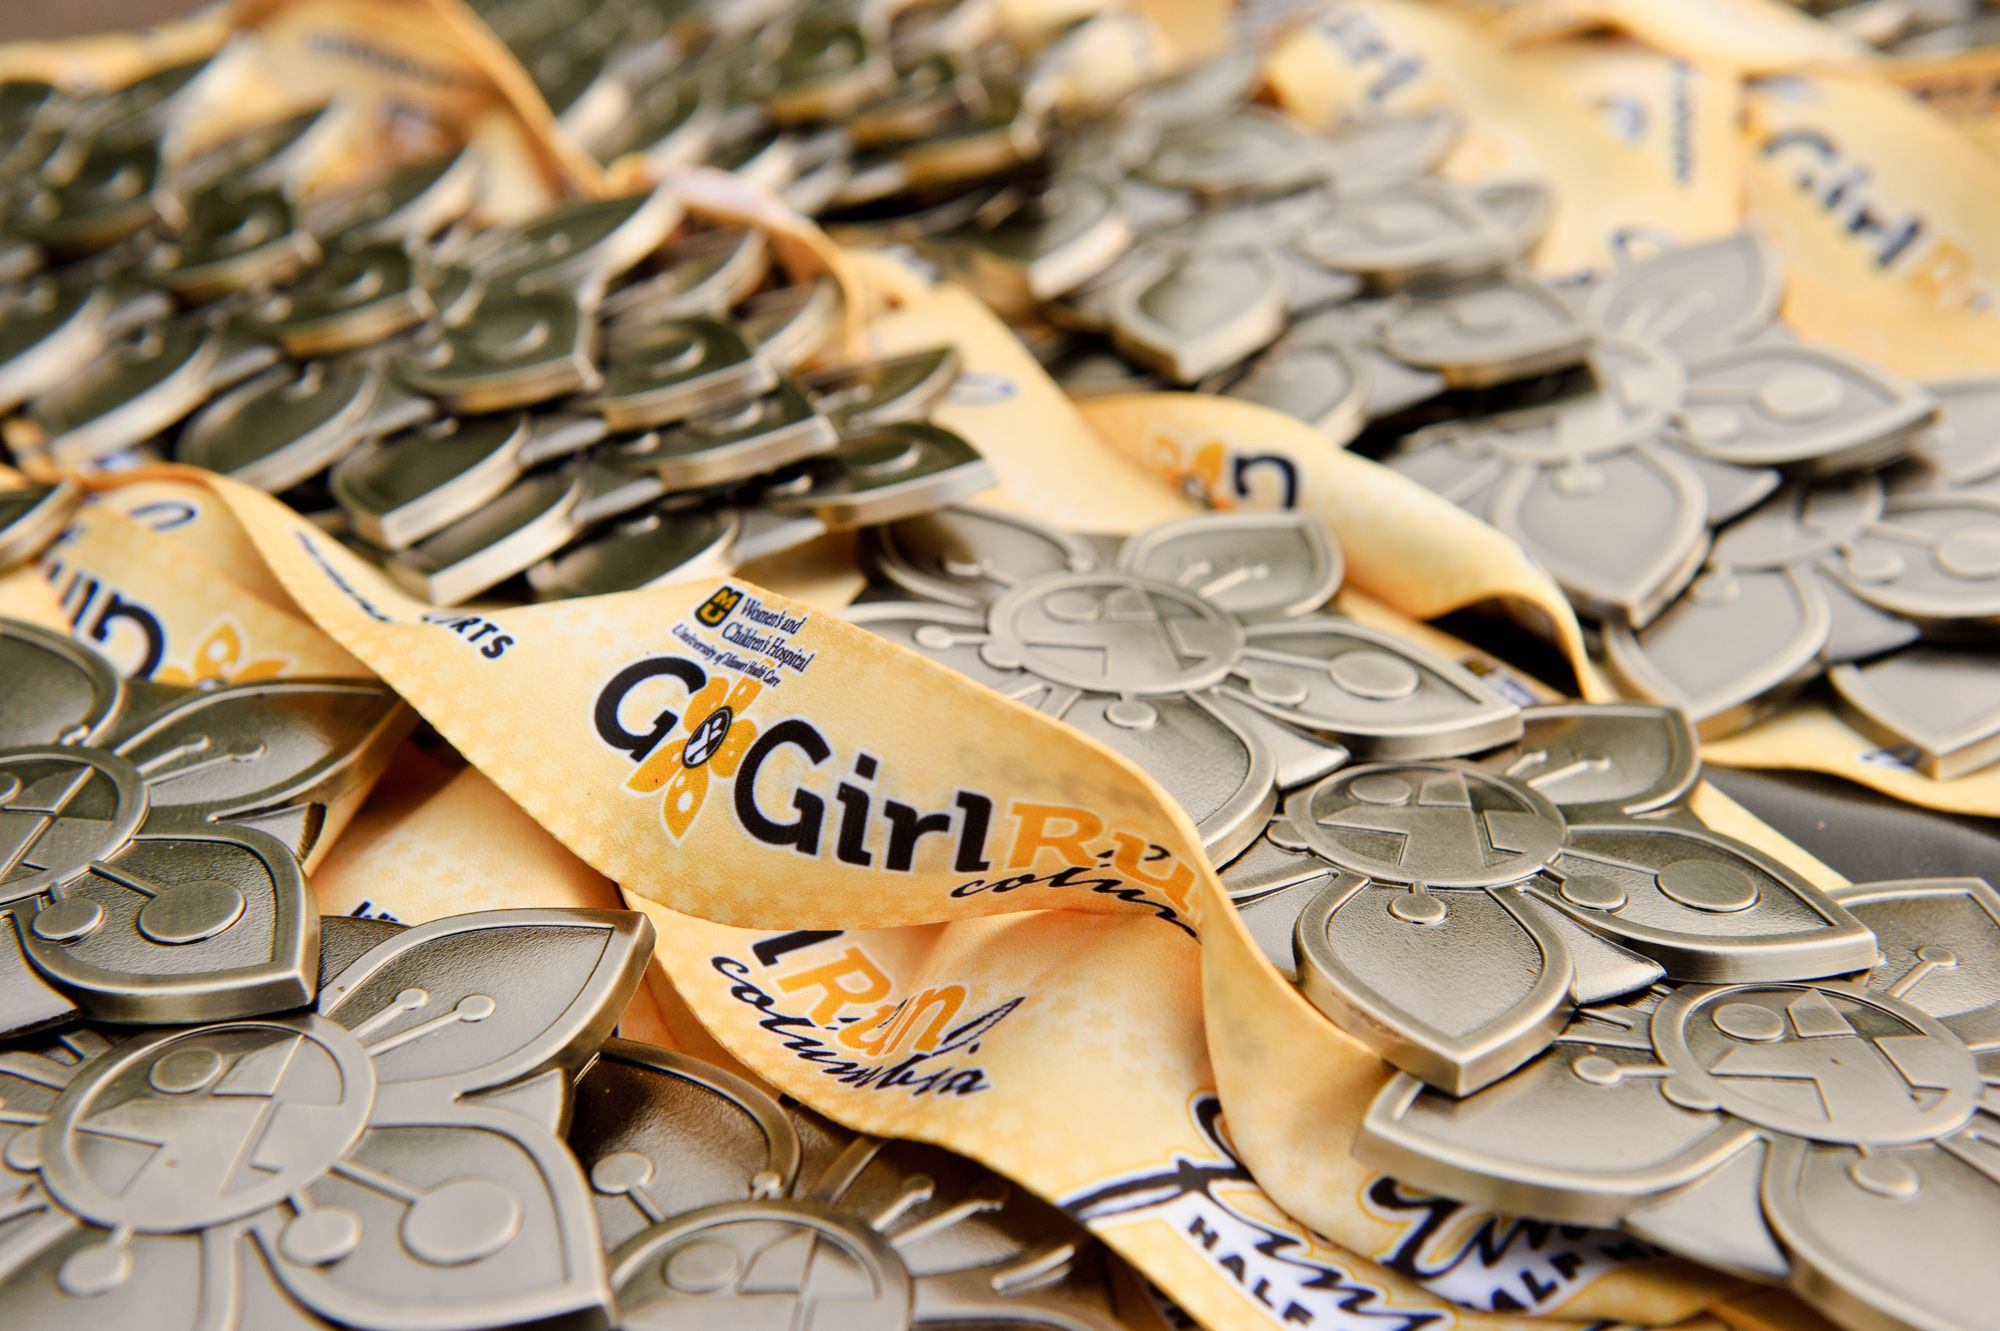 Go Girl Run Medal